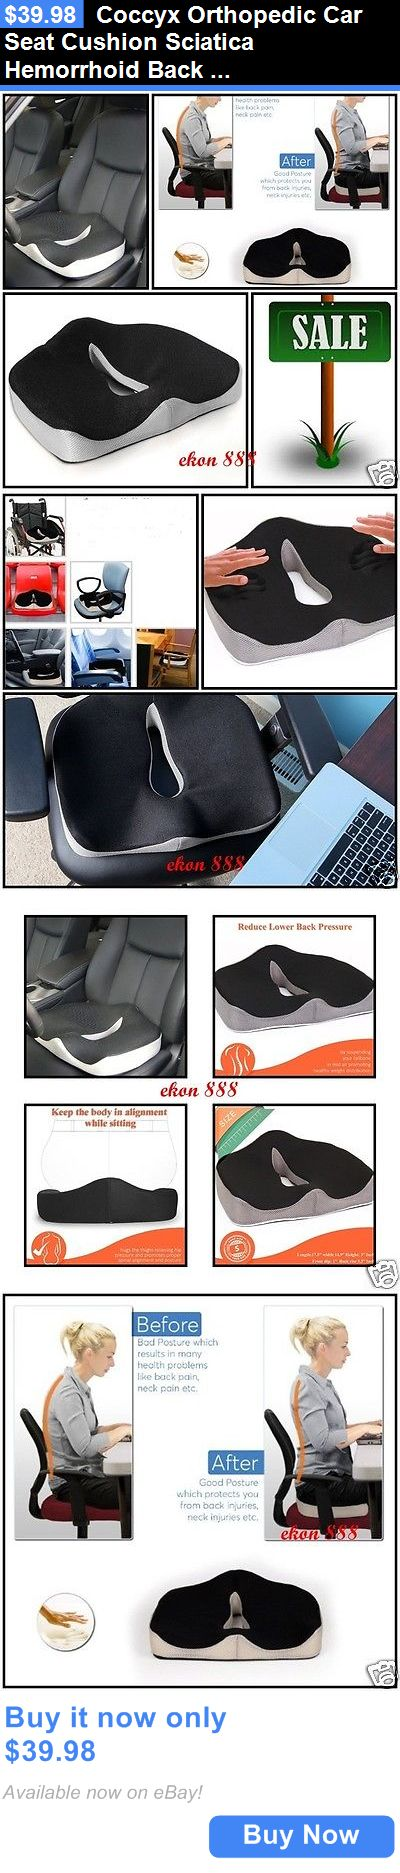 Seat and Posture Cushions: Coccyx Orthopedic Car Seat Cushion Sciatica Hemorrhoid Back Pain Pregnancy BUY IT NOW ONLY: $39.98